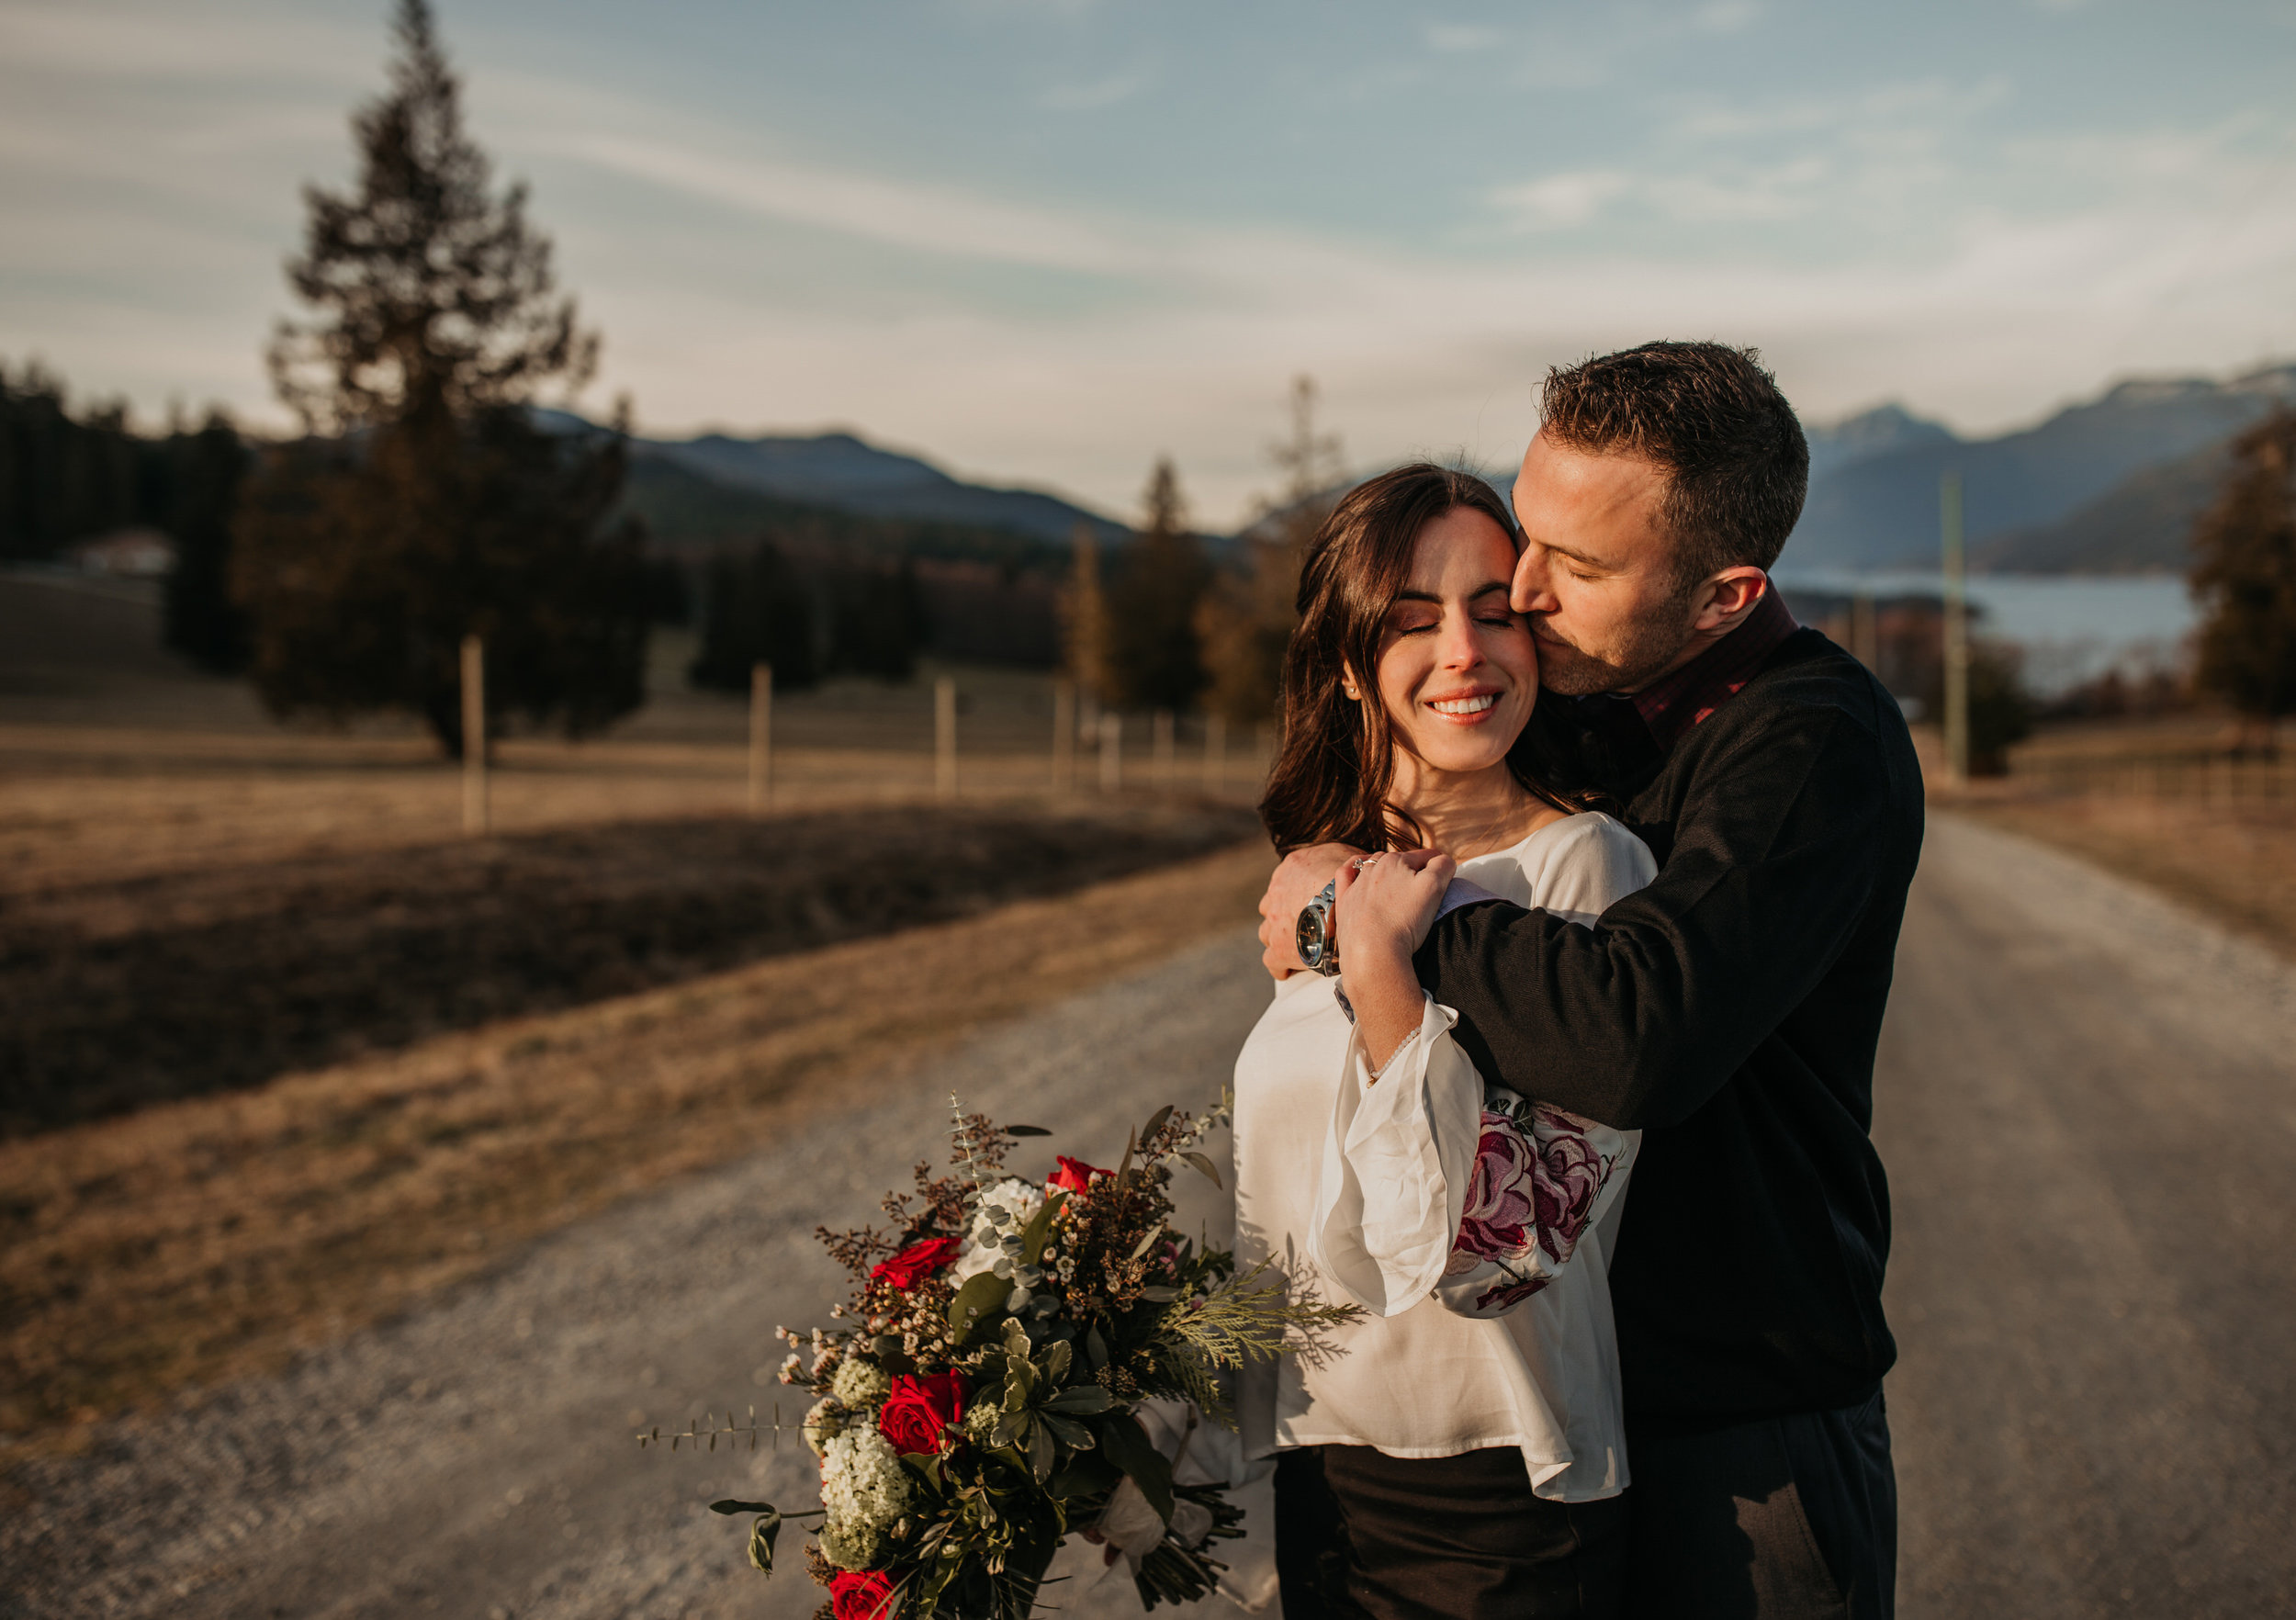 Sunshine Coast Engagement Photos - Sunshine Coast Wedding Photographer - Vancouver Wedding Photographe292r .JPG